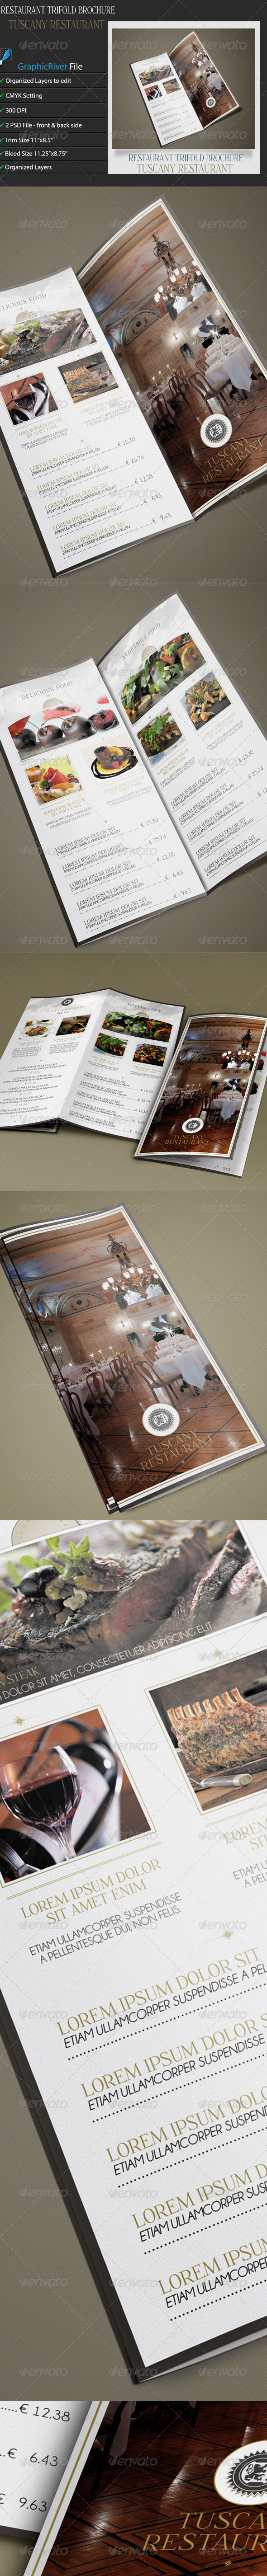 Restaurant TriFold Brochure Tuscany